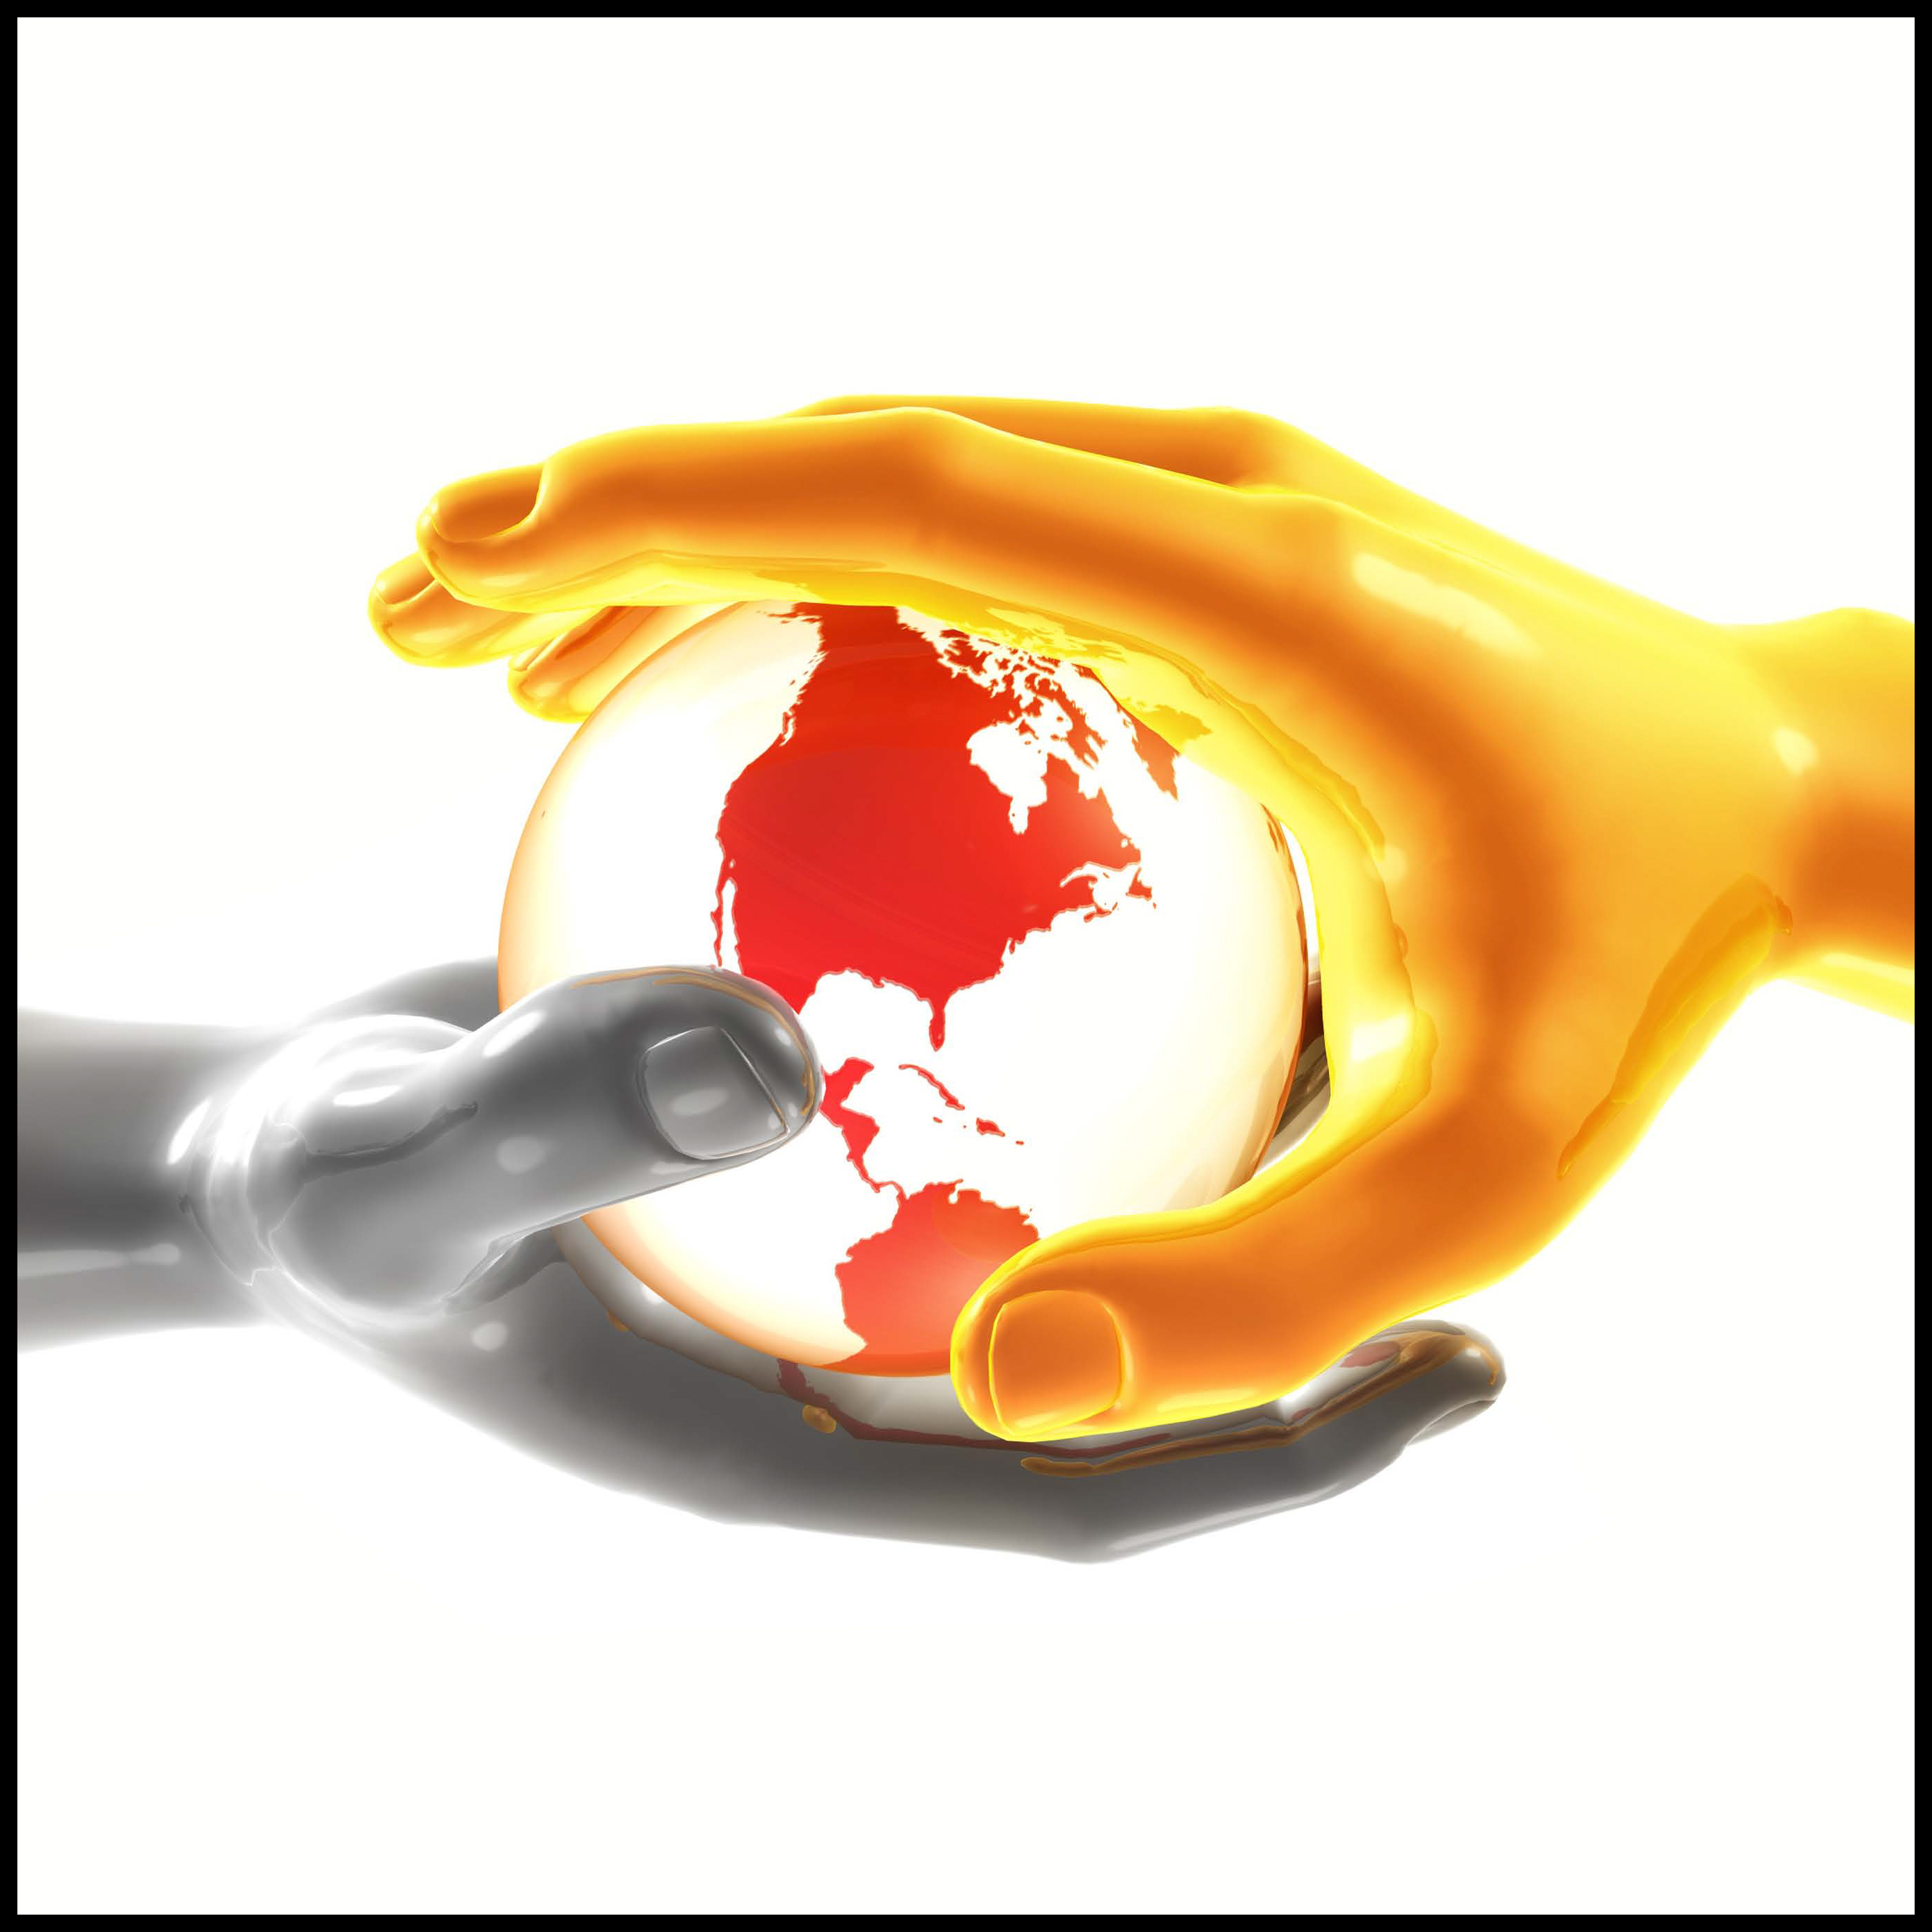 A Photo of two hands circling the world